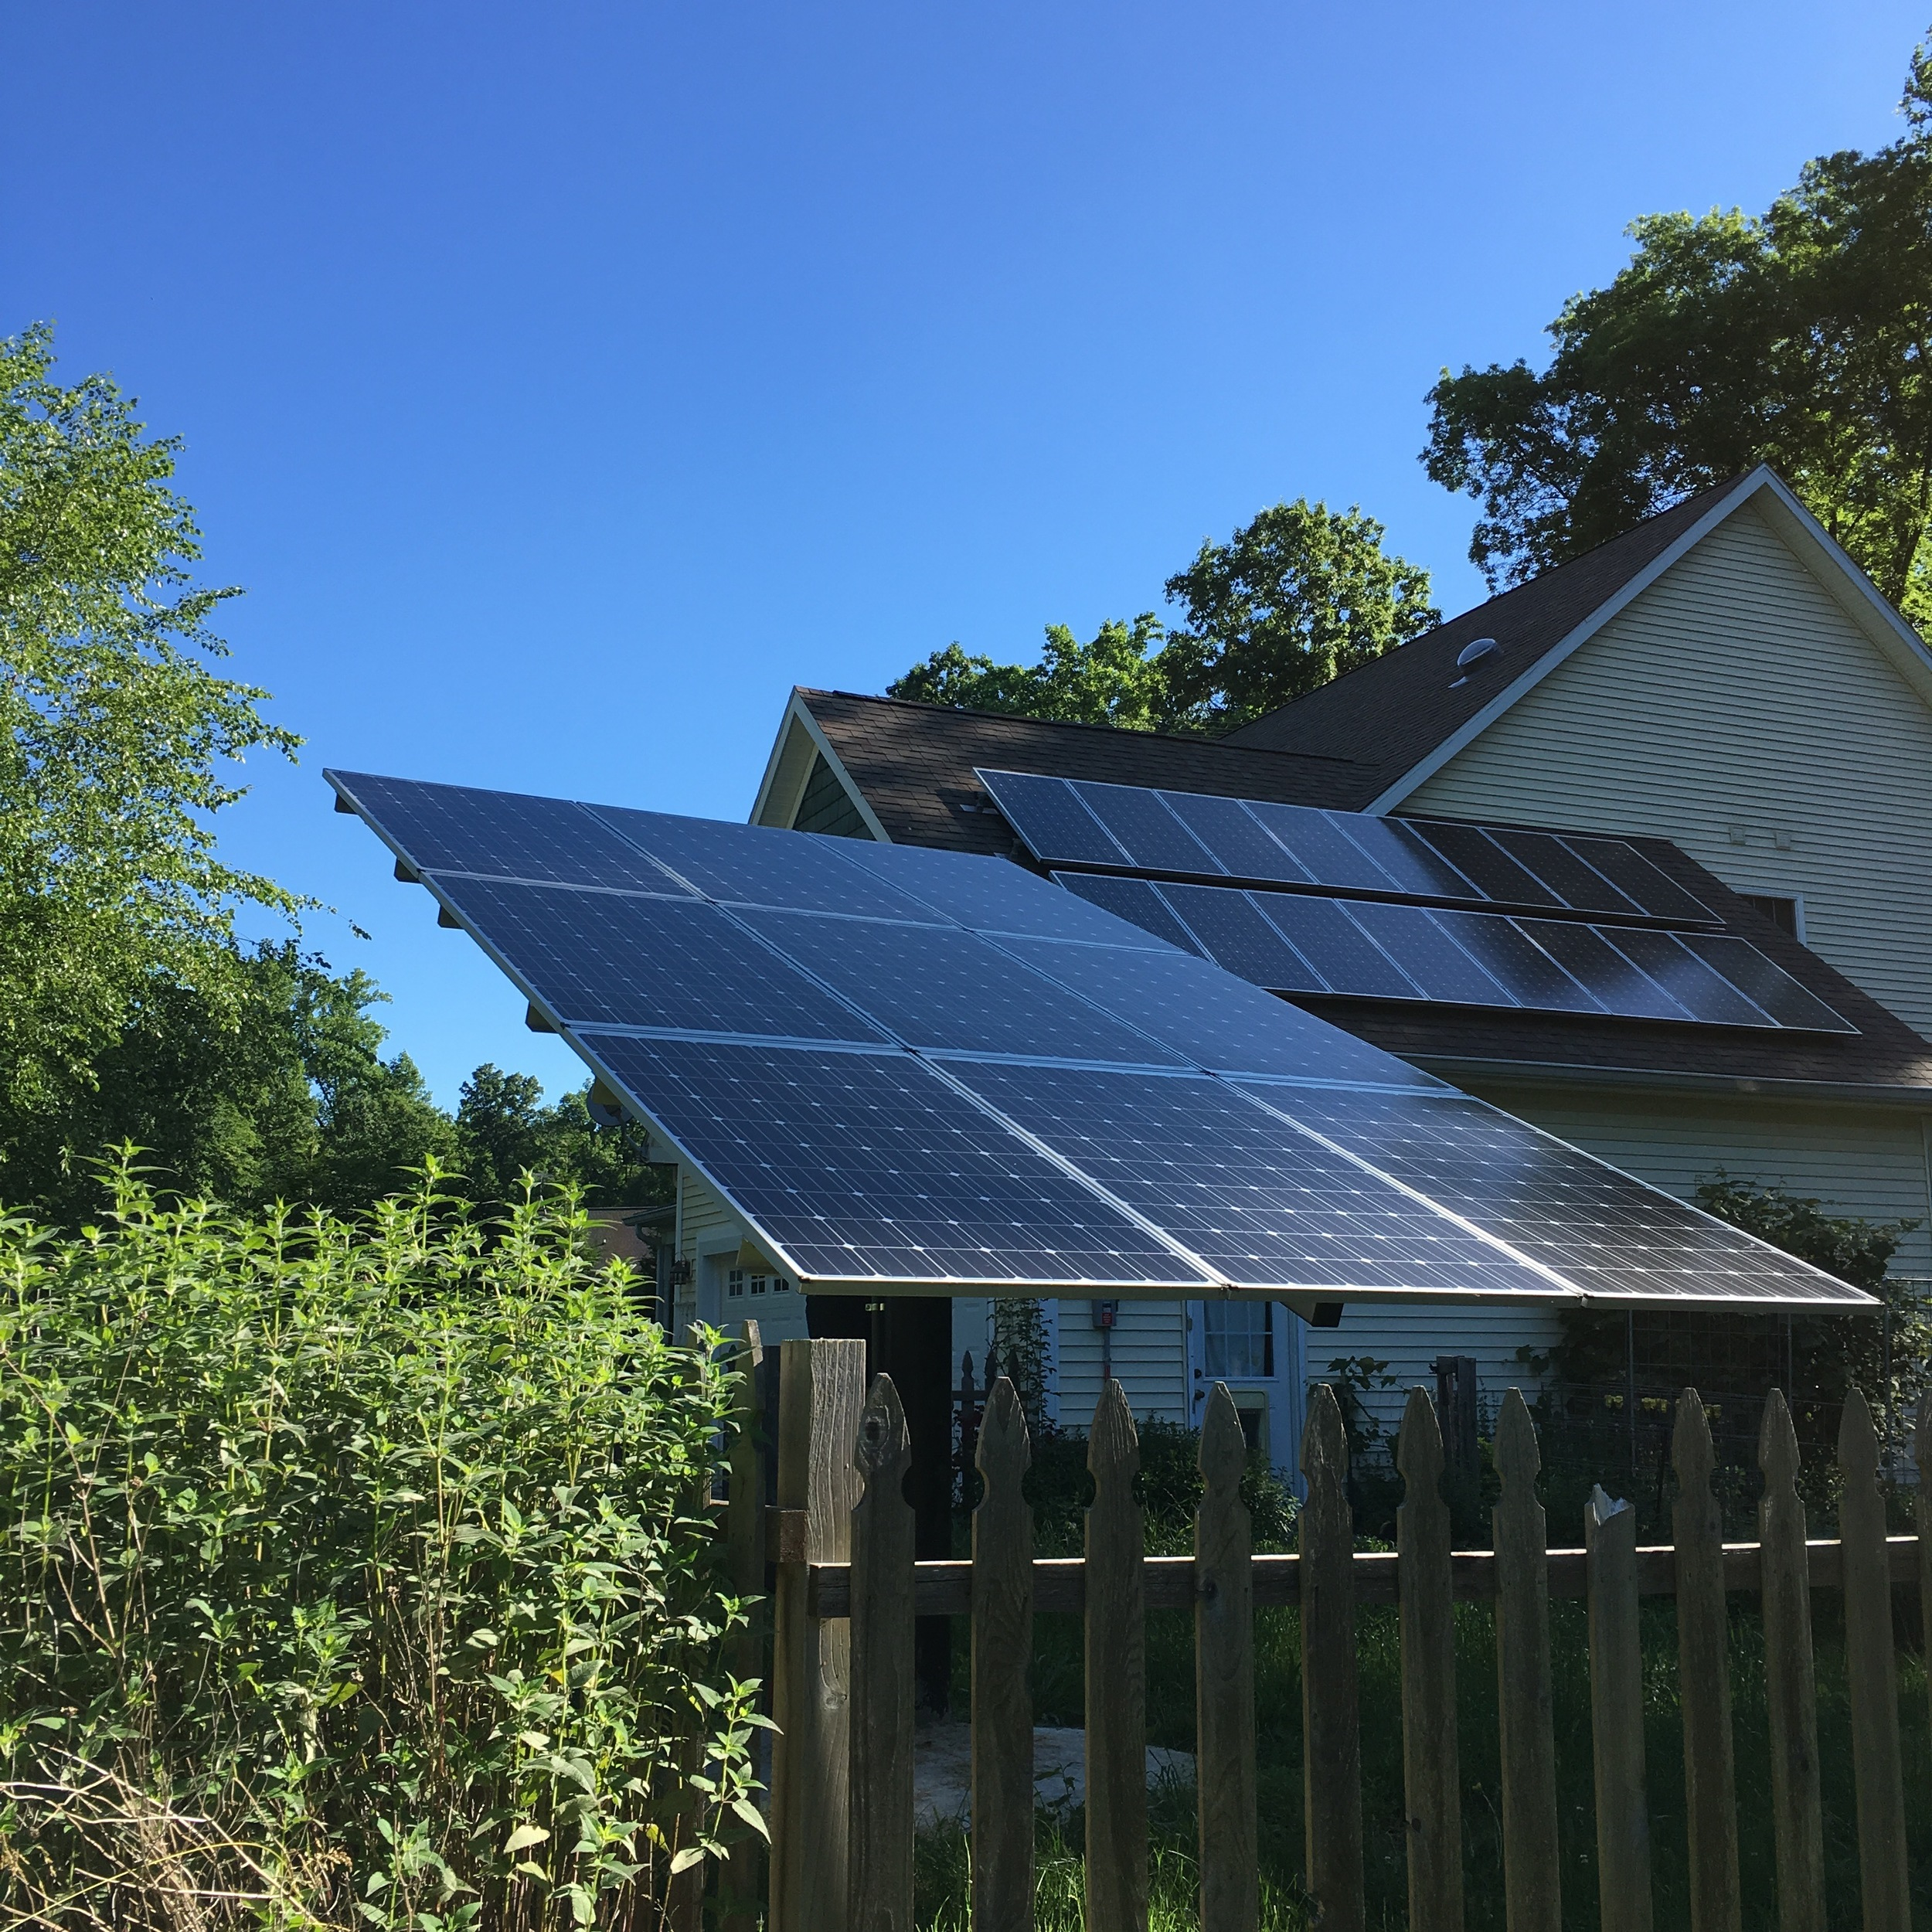 5.65 KW roof and adjustable ground based array net zero residence